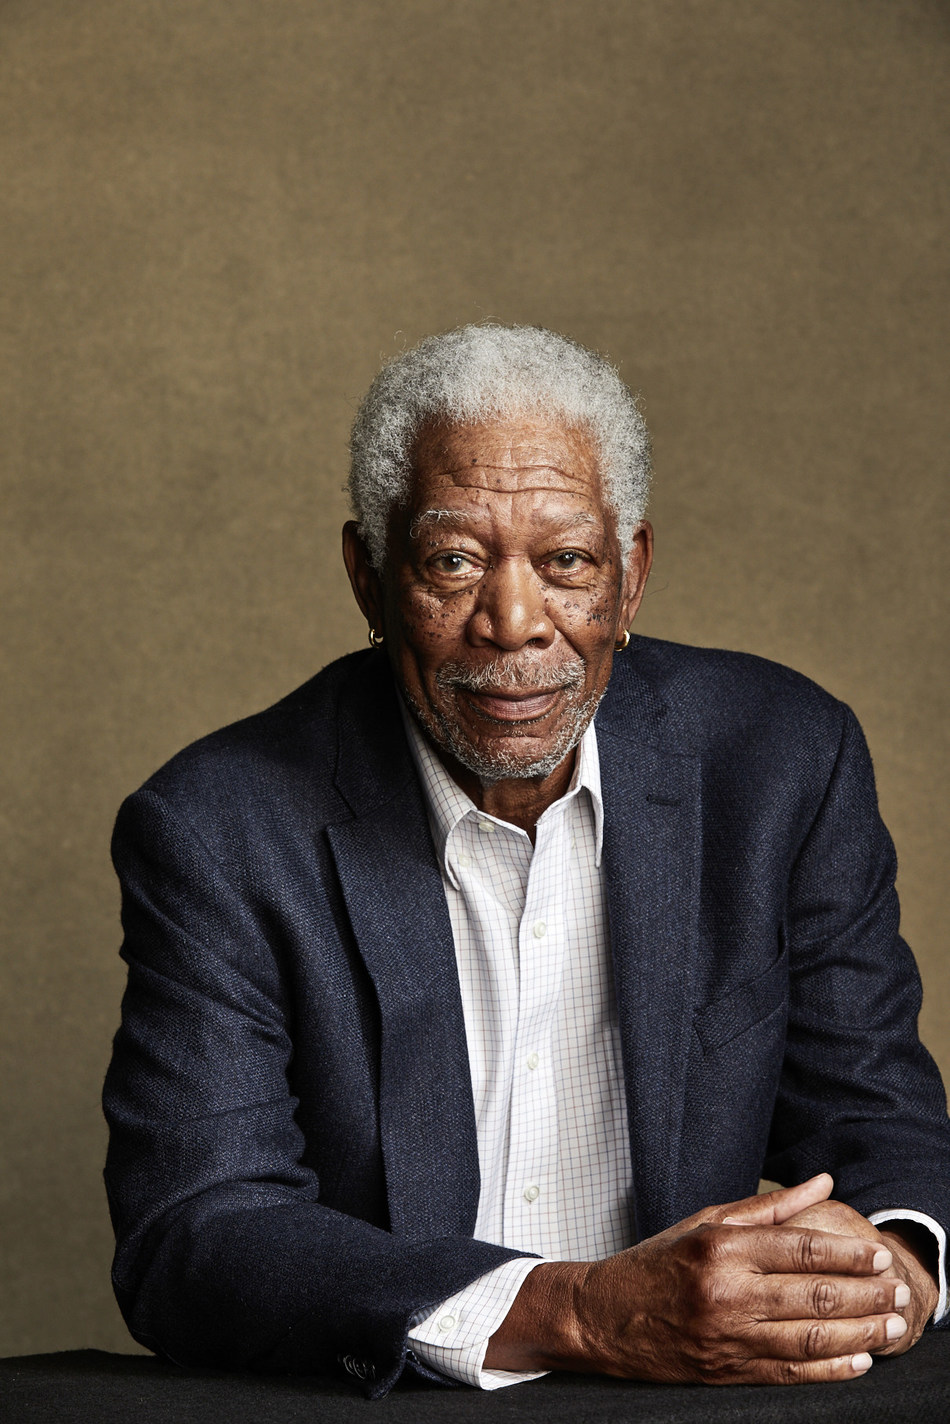 SafeAirbags com and Morgan Freeman Urge You to Check Your